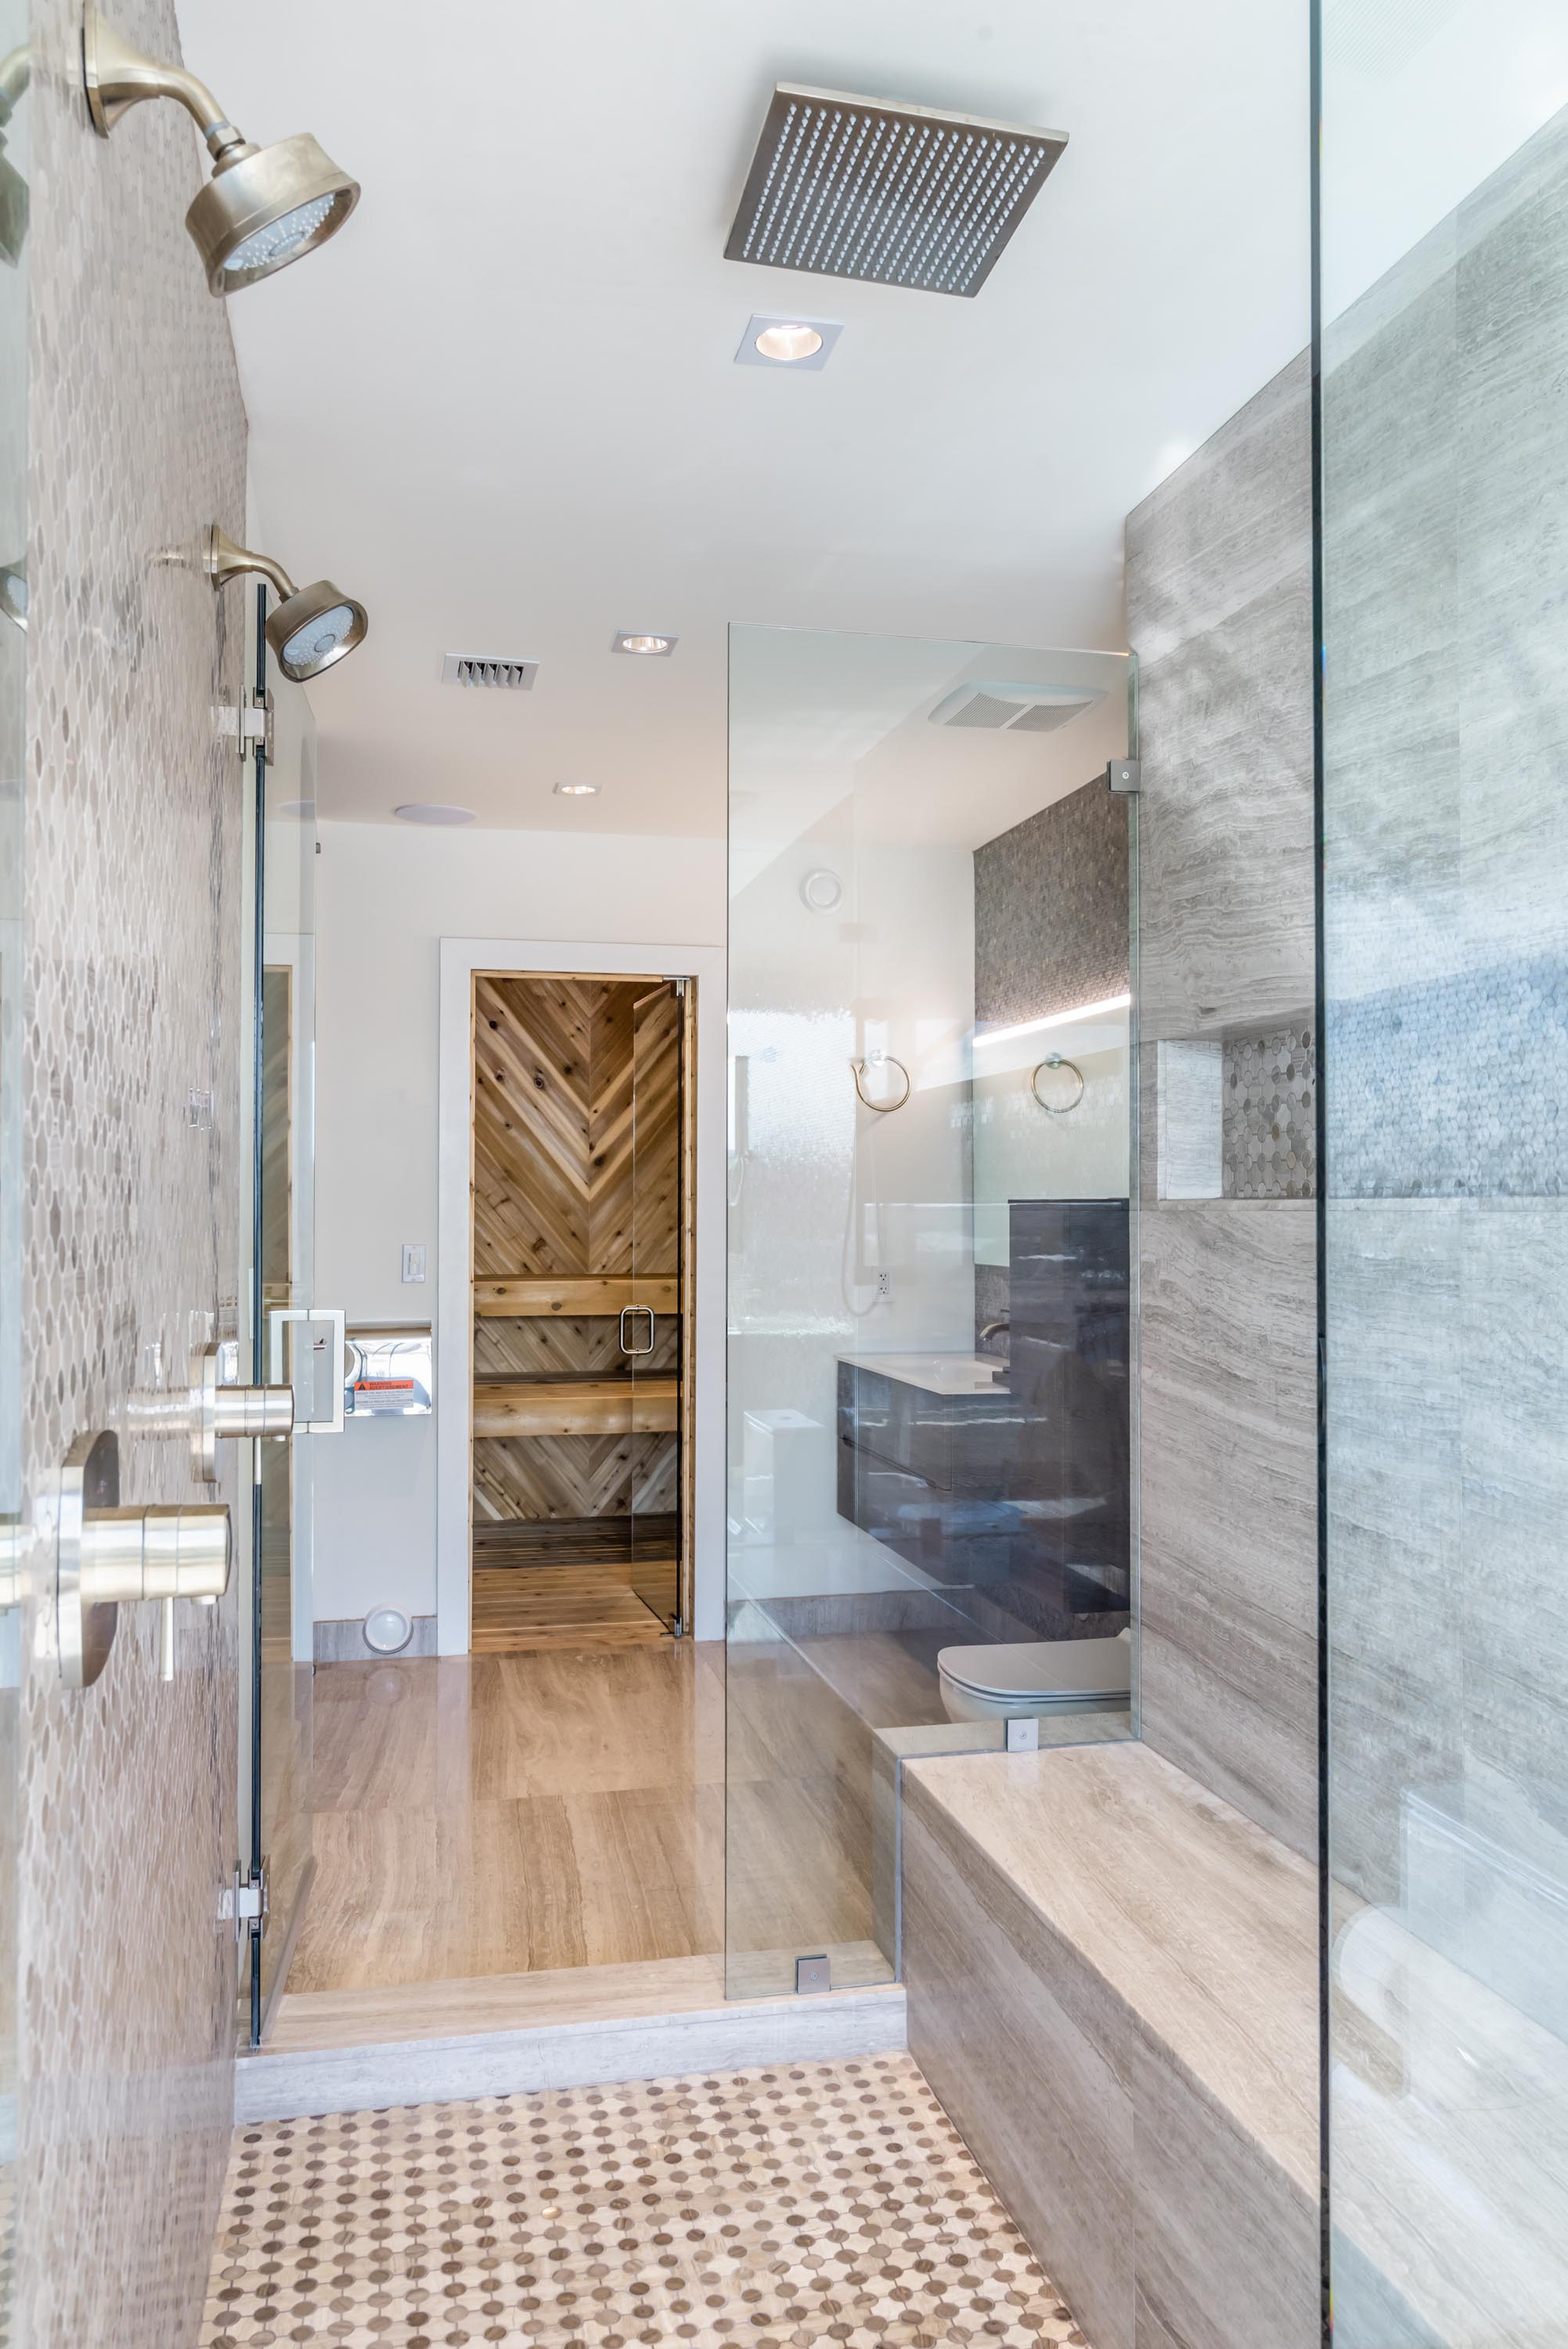 Bathroom with shower metalheads, glass door, hardwood floor and sauna